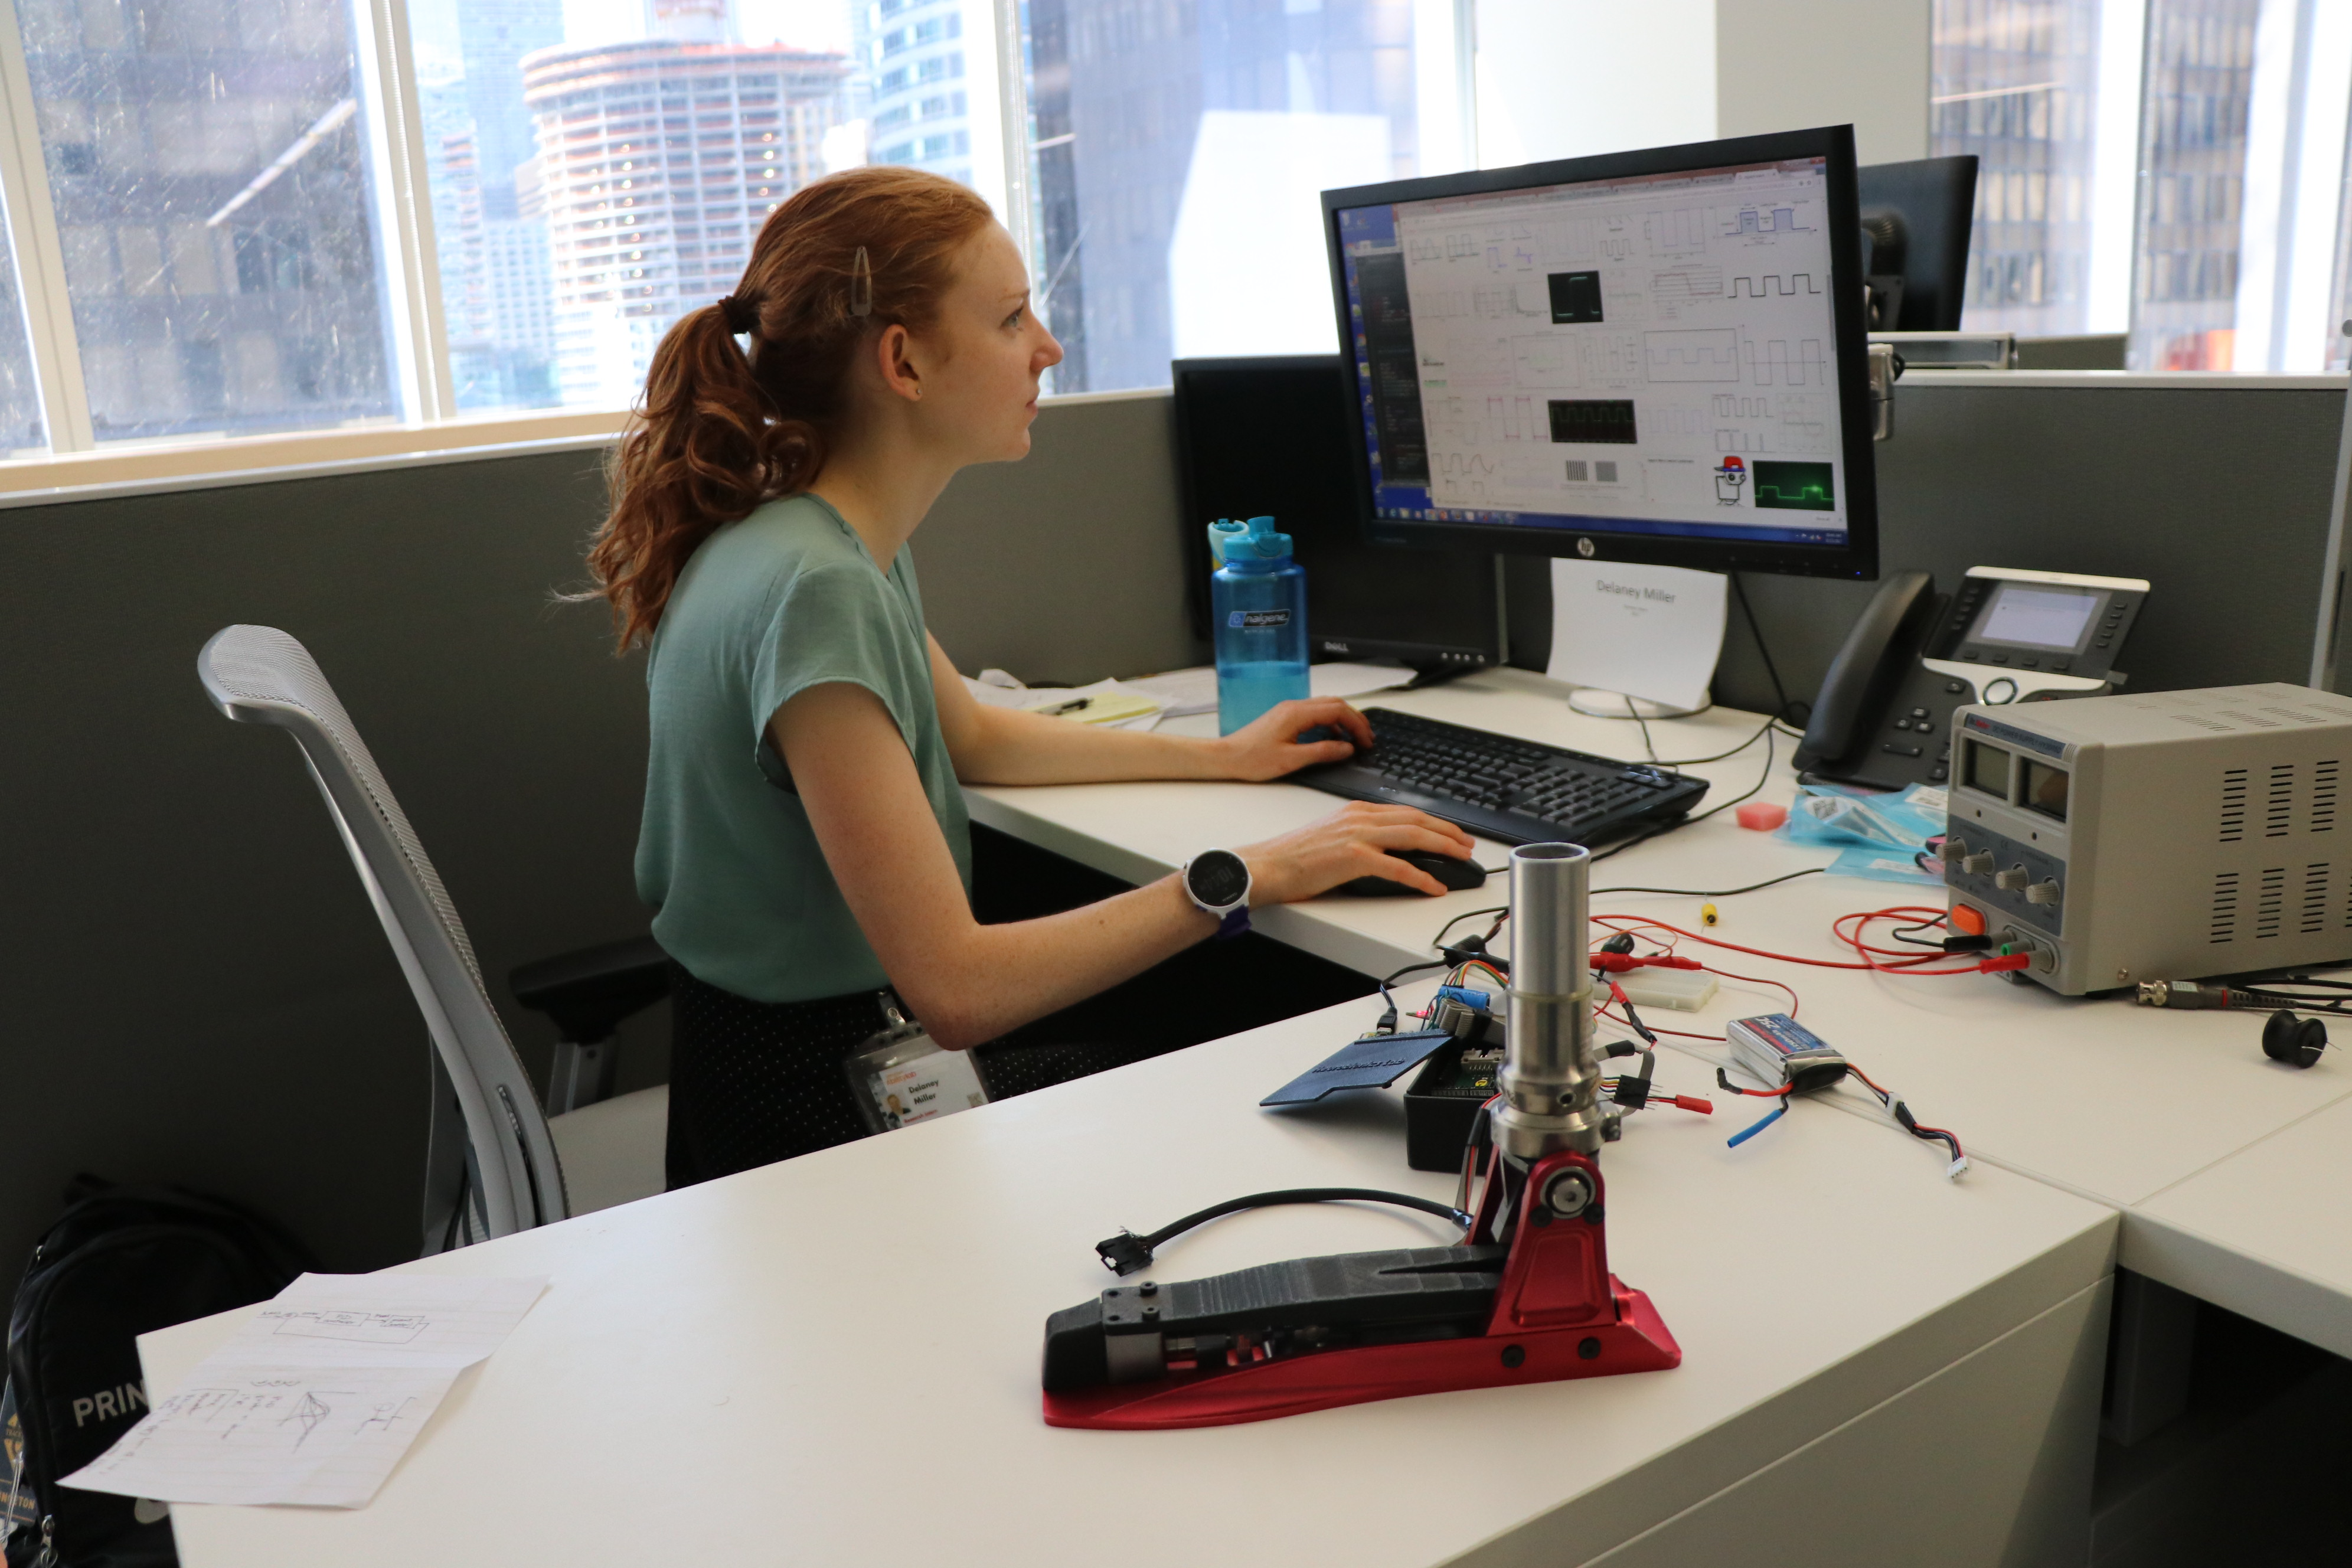 Intern working on developing a control system for an ankle prosthesis